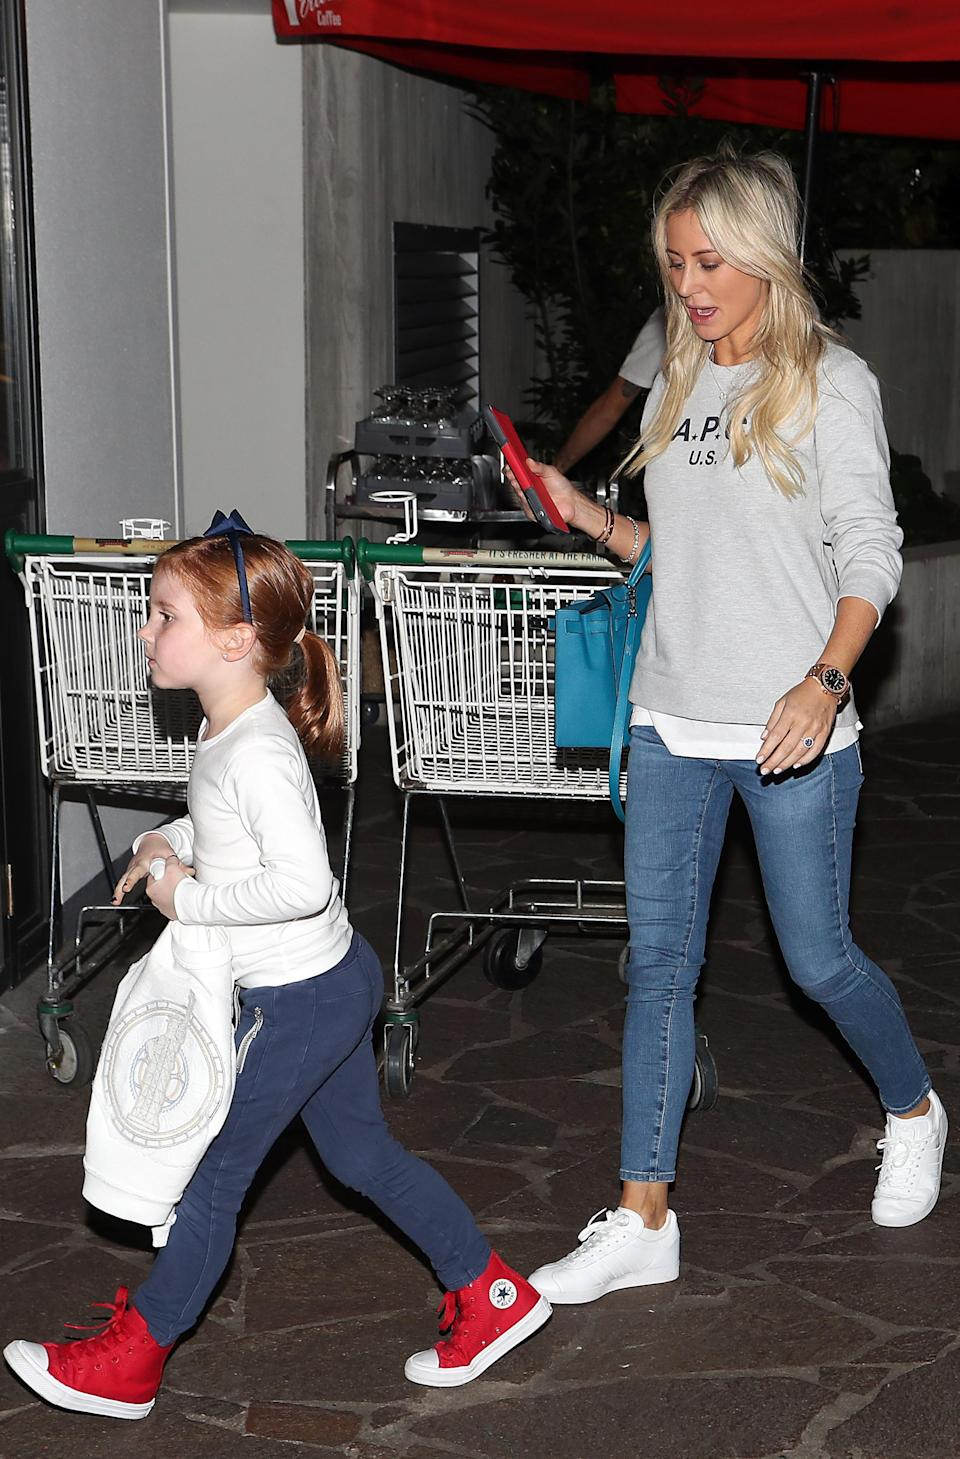 Roxy looked casual in jeans as she was joined by her daughter, five-year-old Pixie.